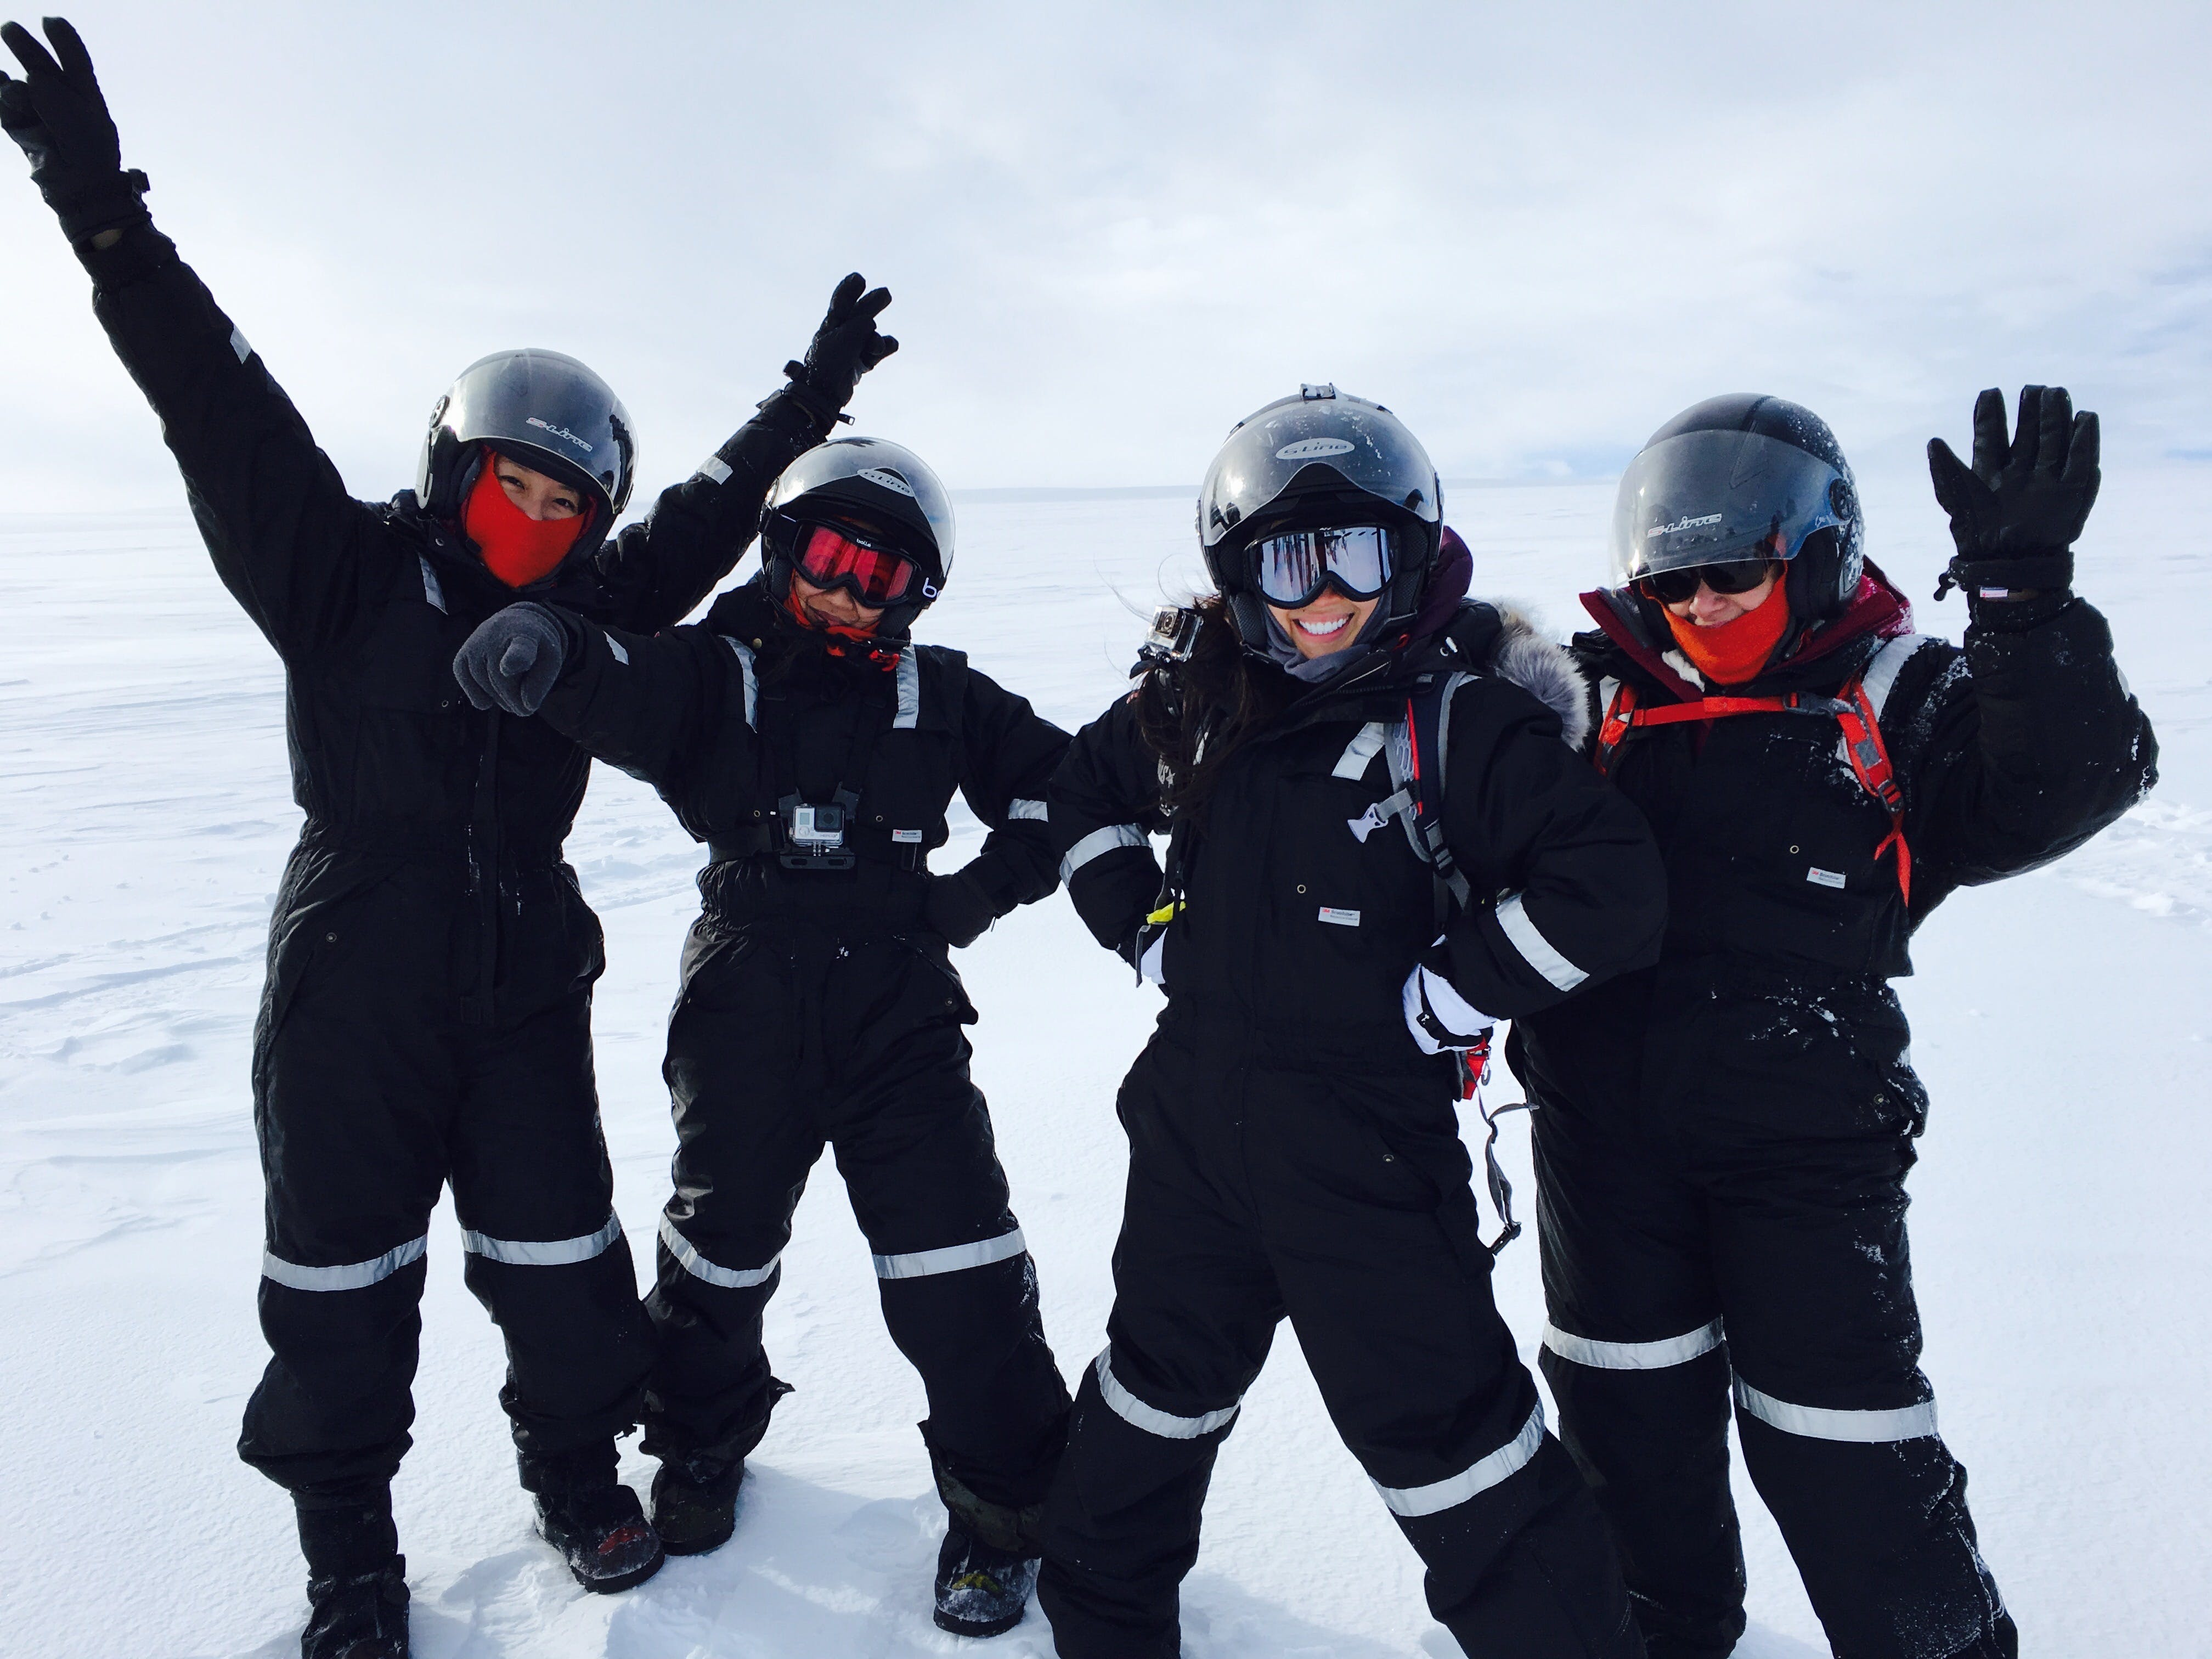 Four Person Wearing Black Snow Suit